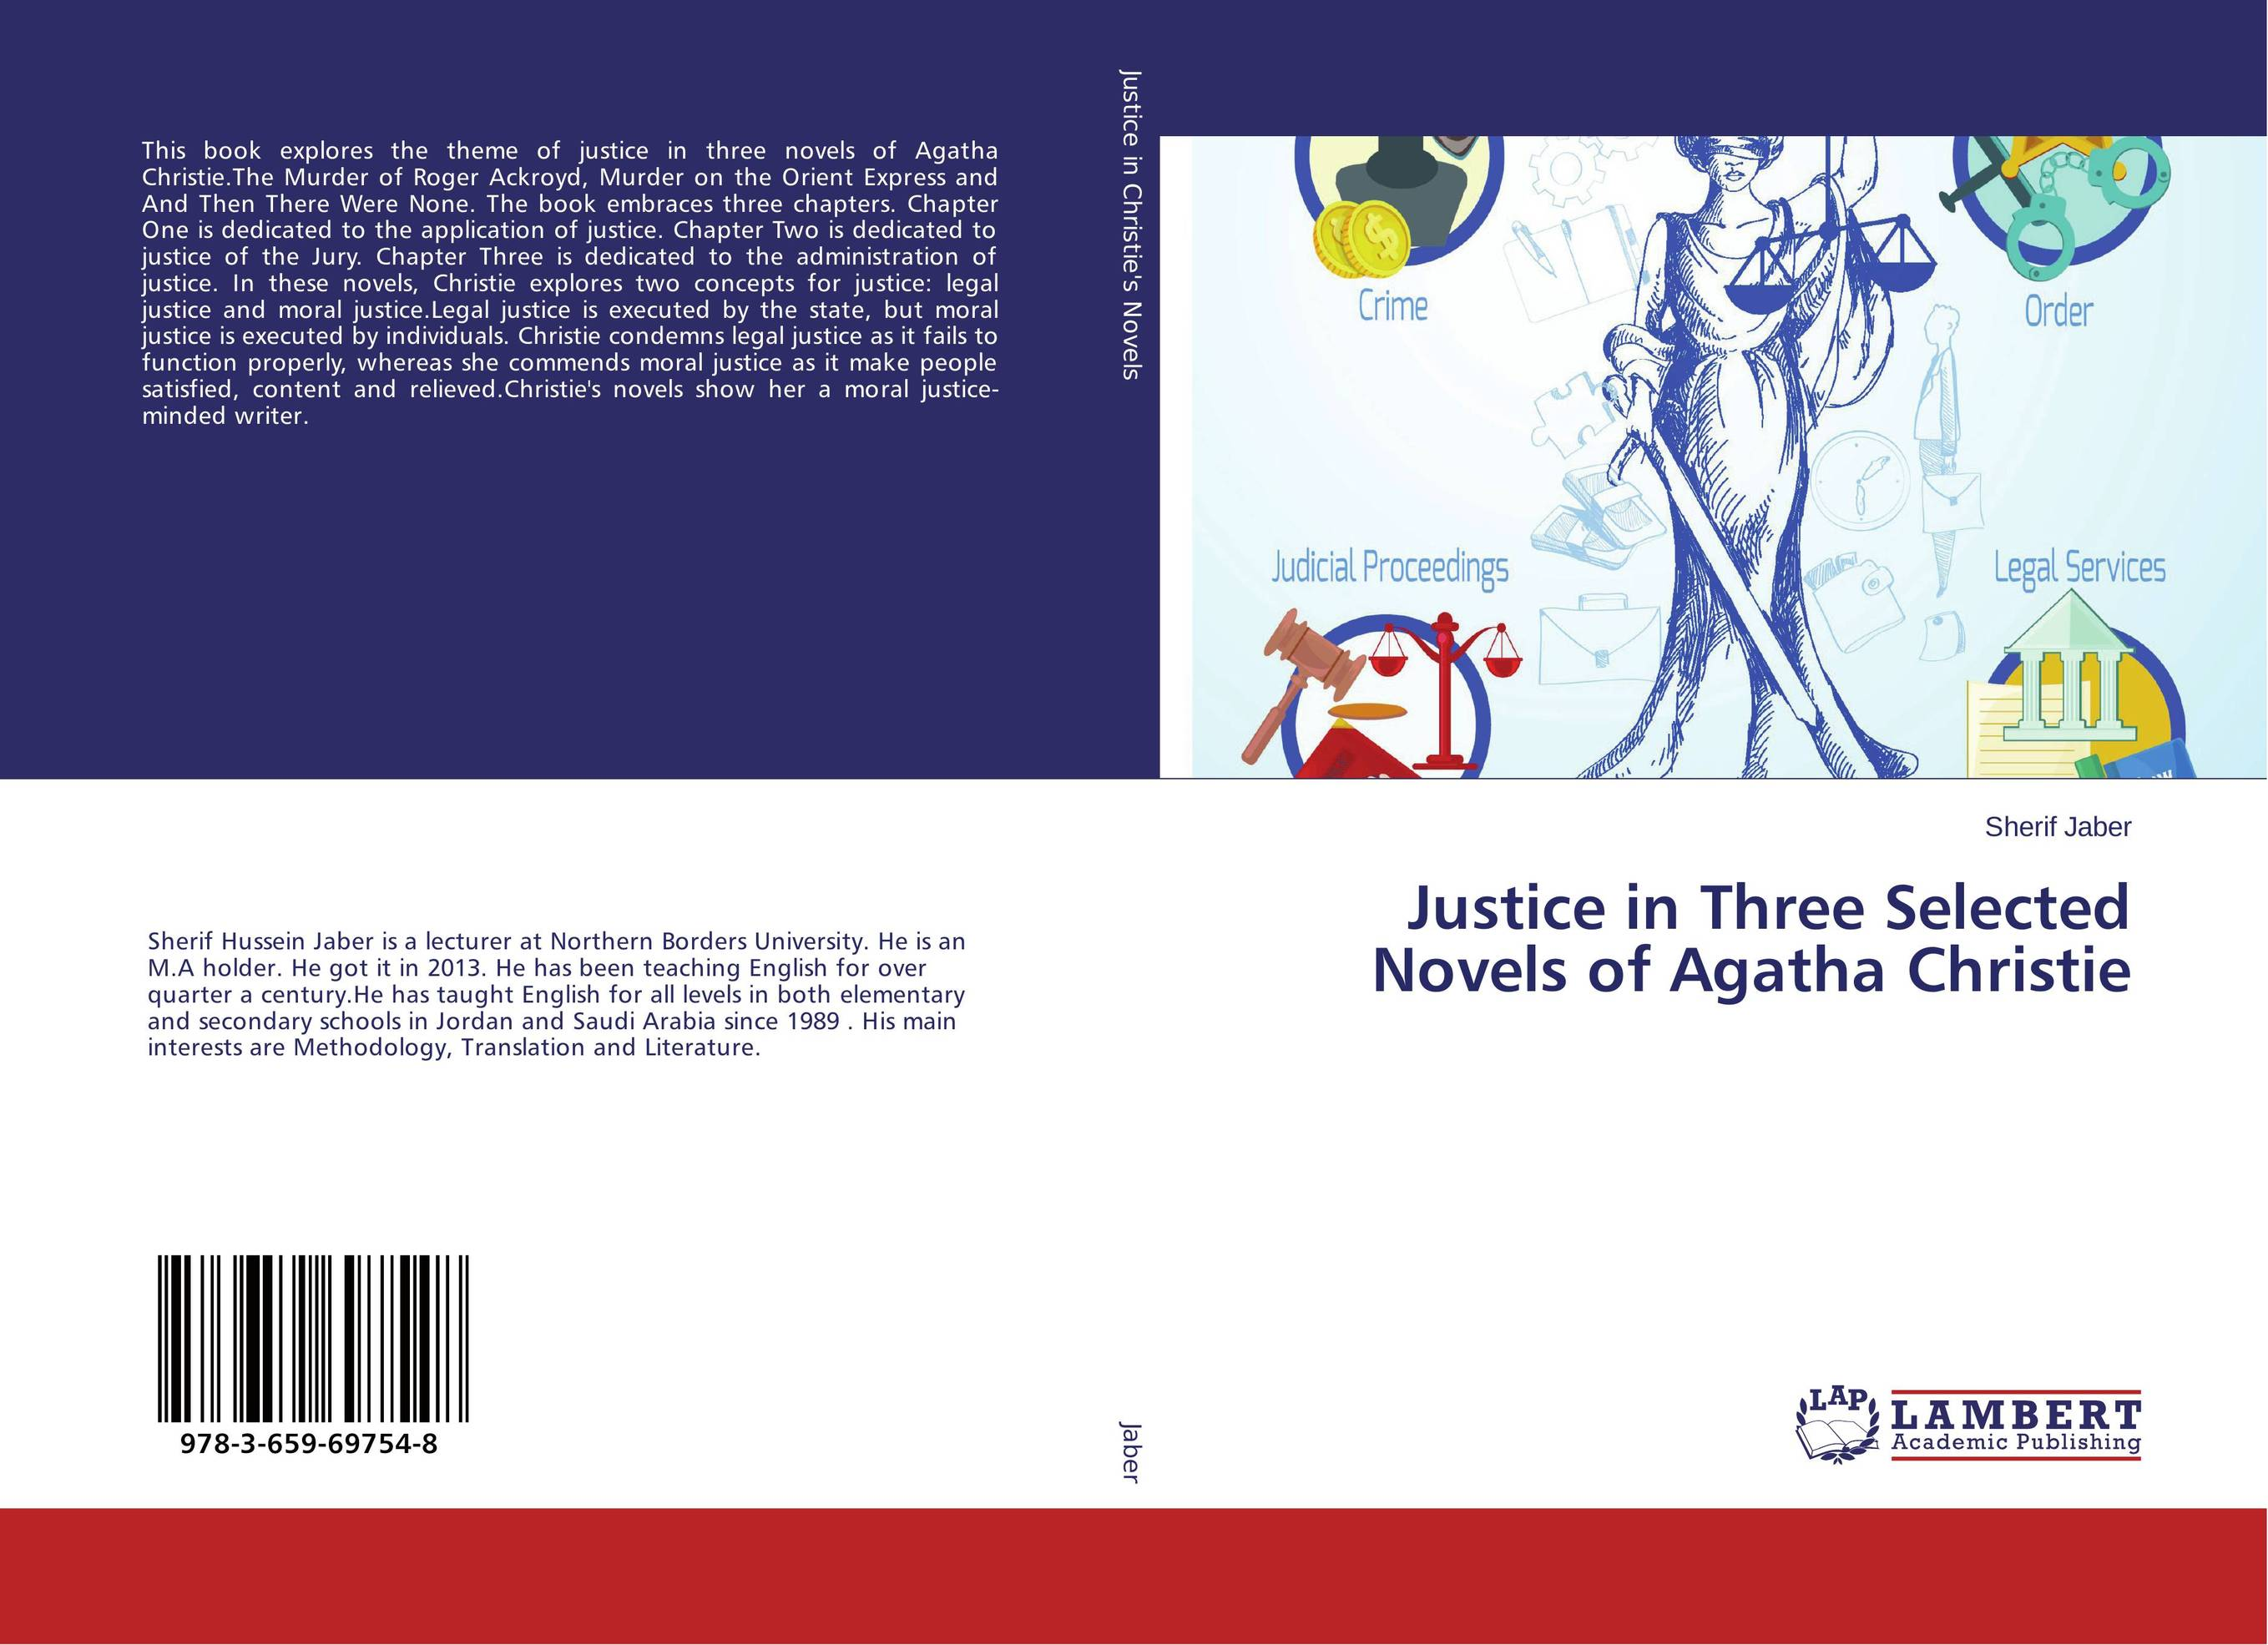 Justice in Three Selected Novels of Agatha Christie stowe three novels